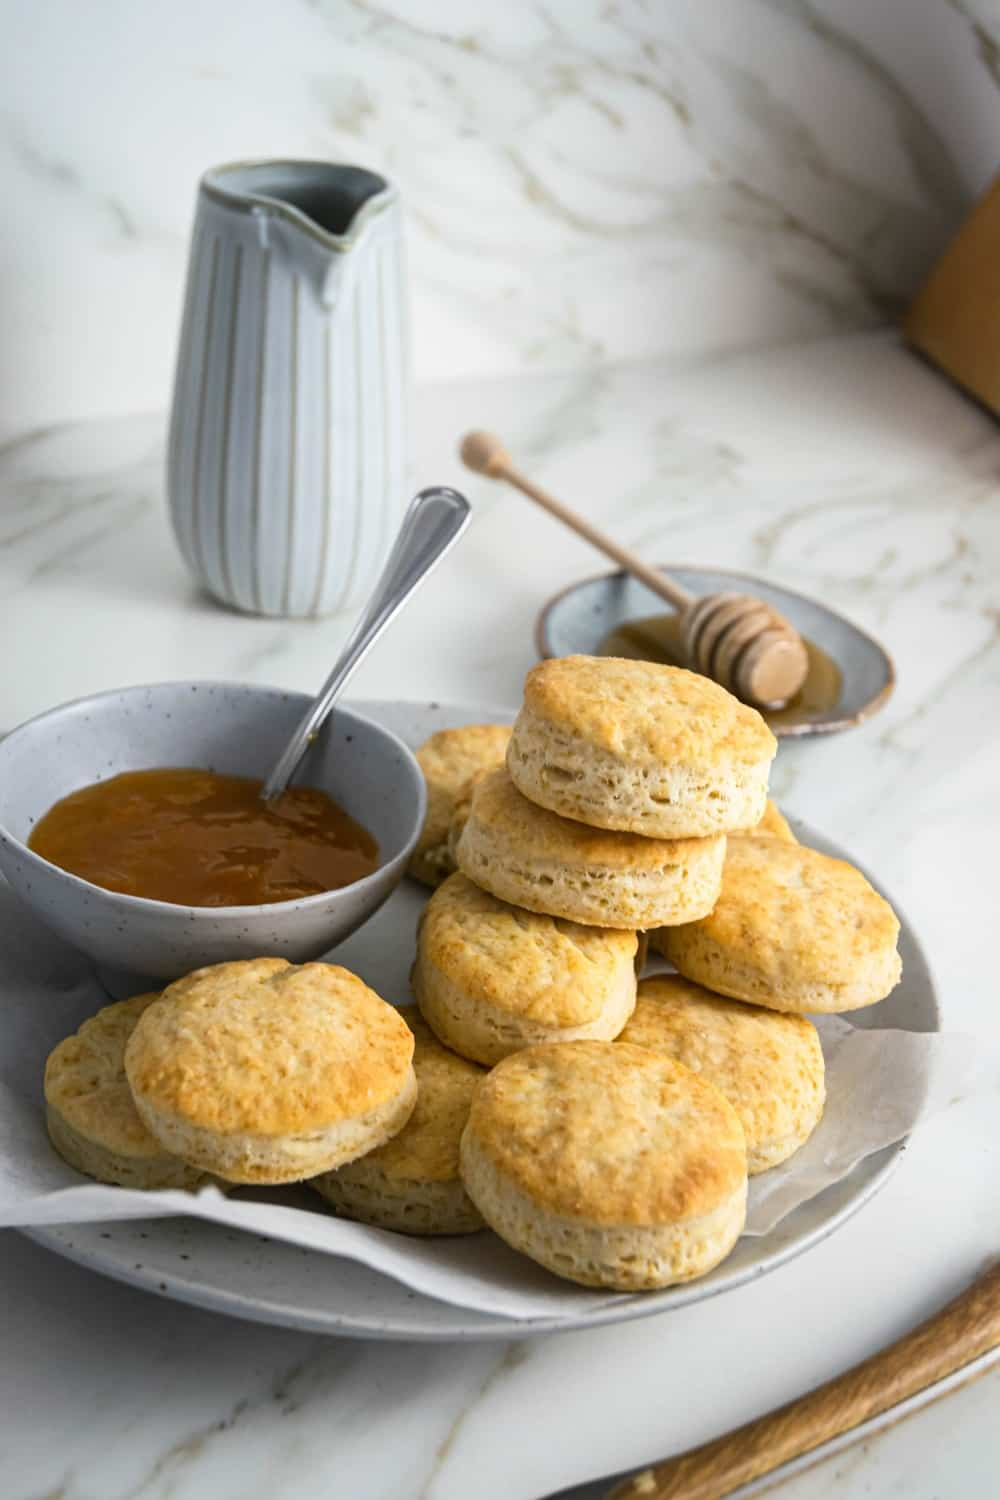 A bunch of biscuits and a piece of parchment paper on a gray plate. There is a bowl of gravy on the plate to the left of the biscuits in behind the plate is a small bowl of honey on a white counter.